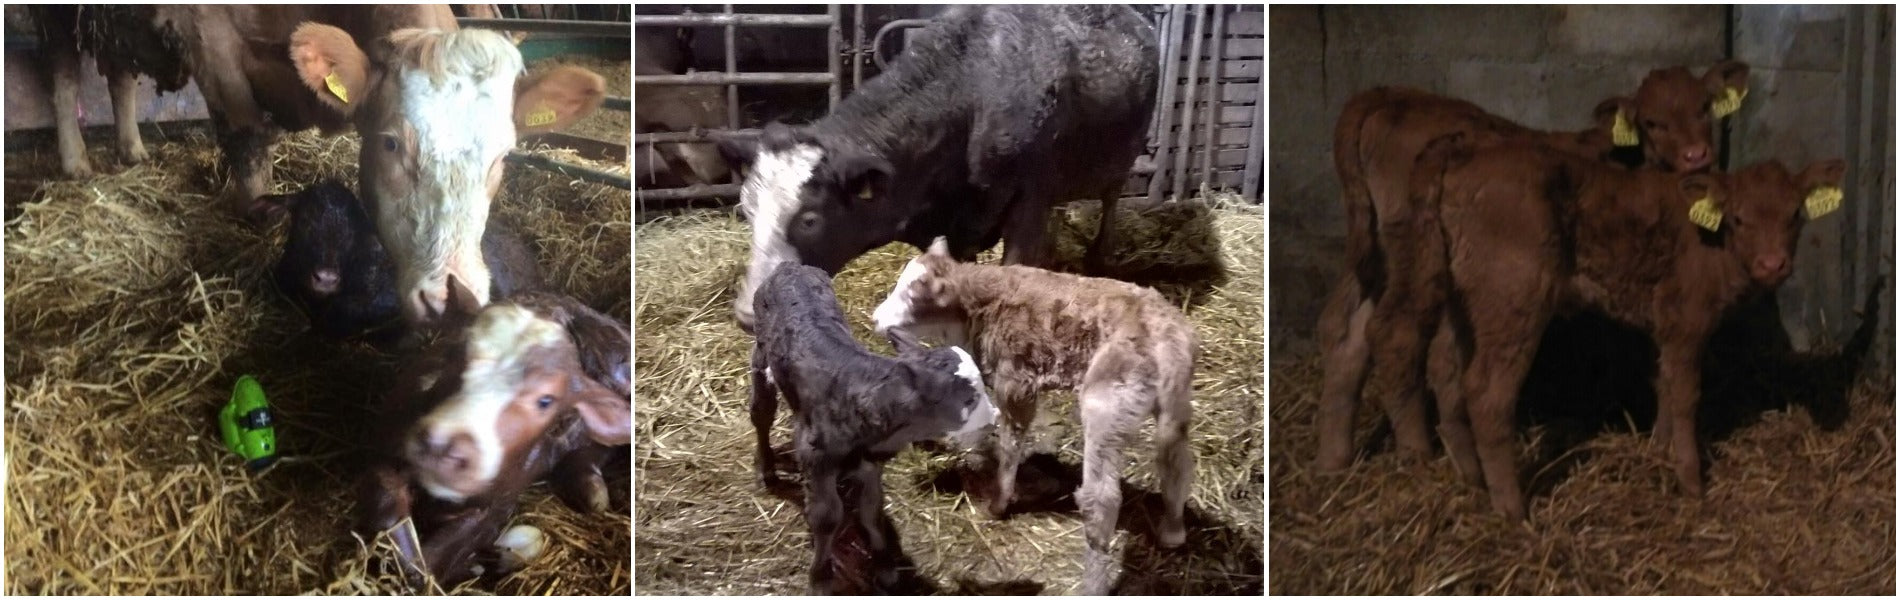 Twin Calves - what to expect when you're expecting